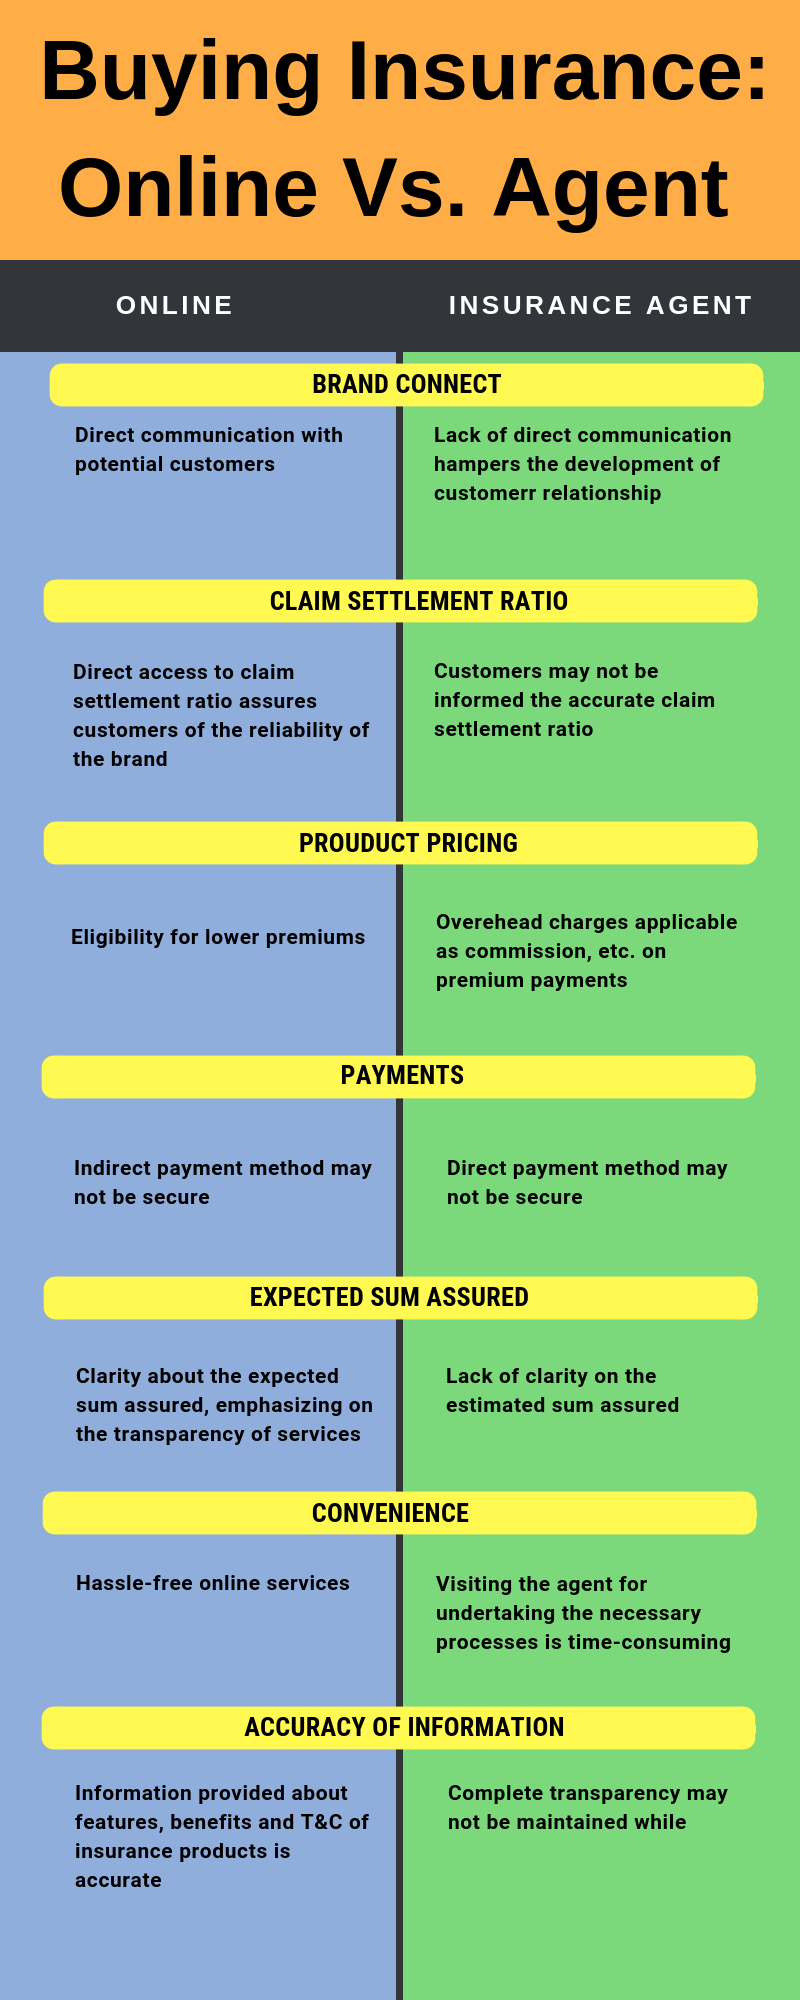 Buying Term Insurance Online vs Agent: Whom to choose?